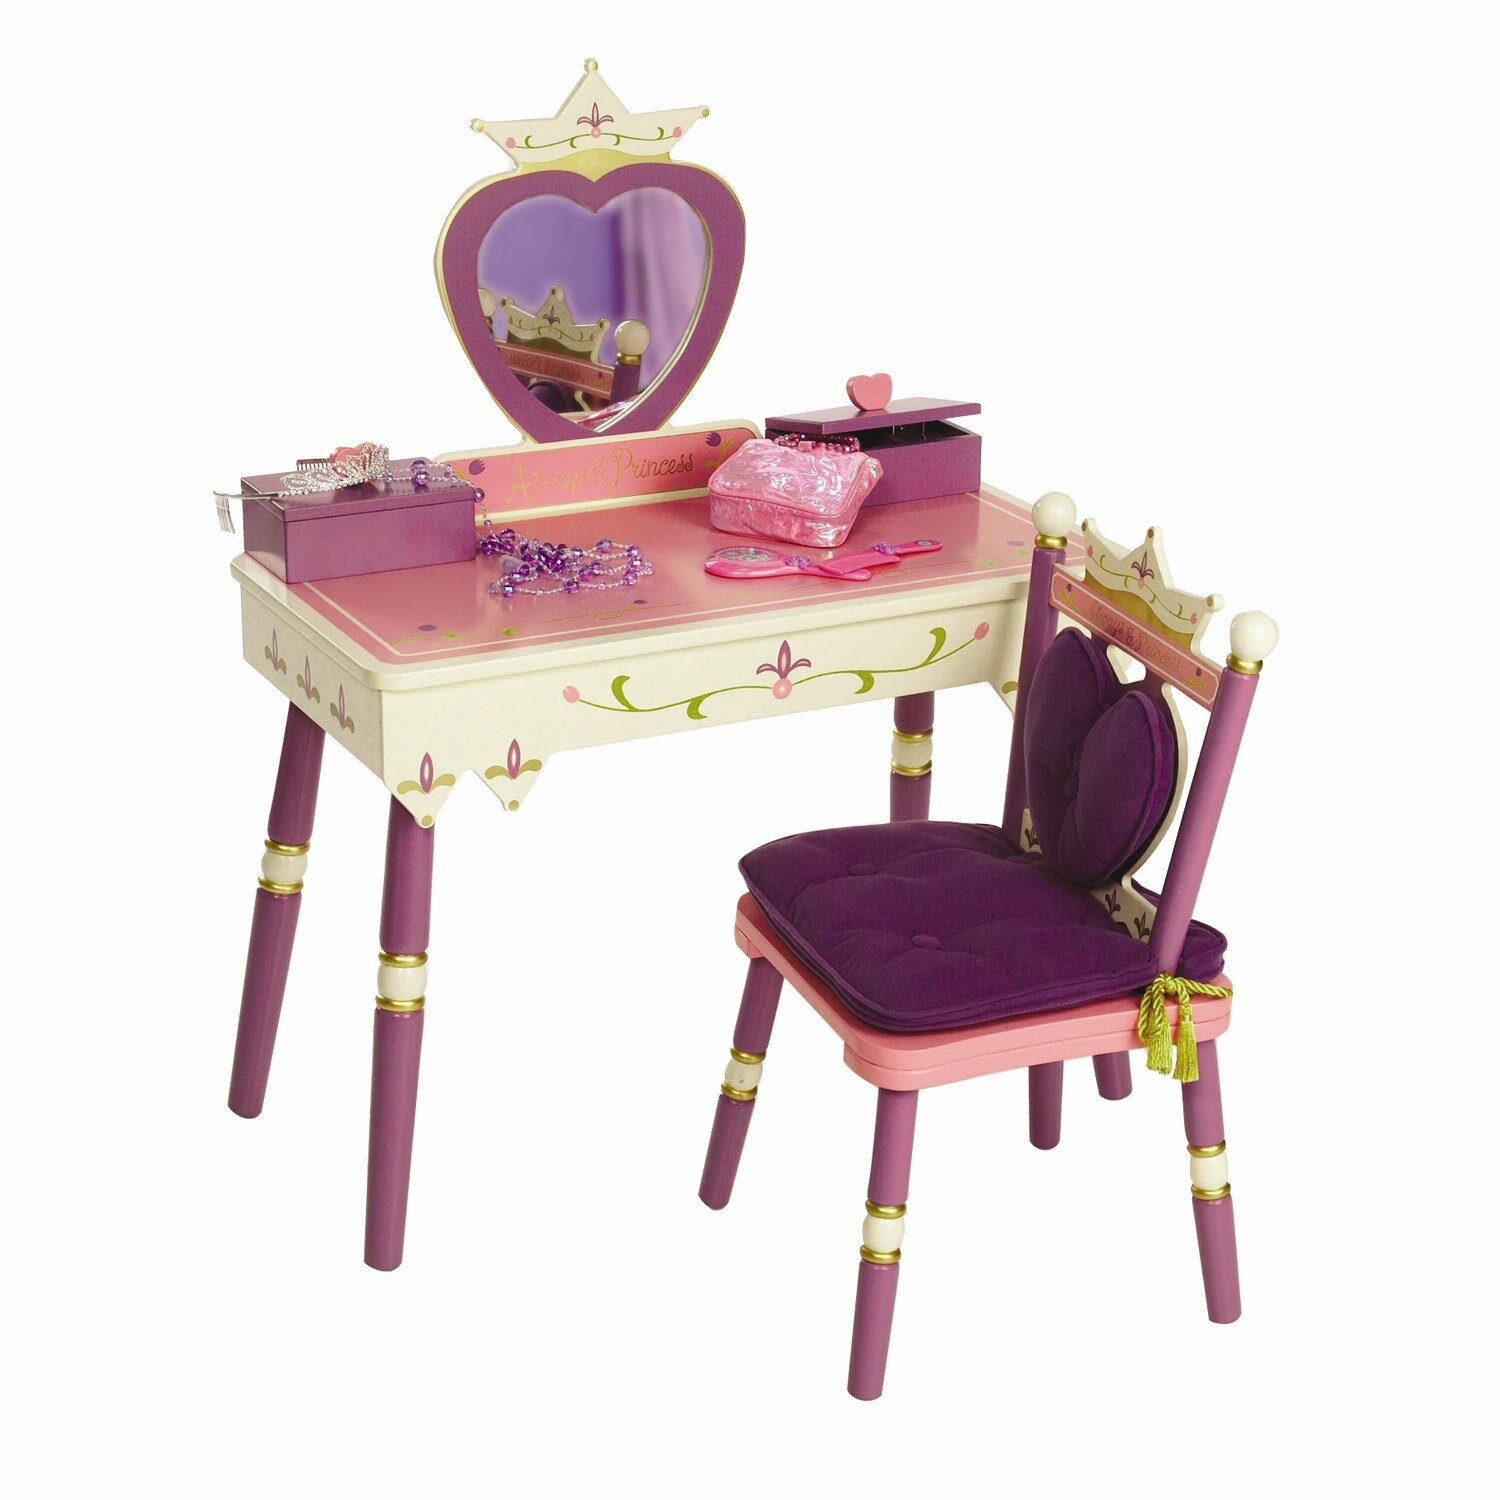 Levels Of Discovery Princess Vanity Set With Mirror Reviews Wayfair